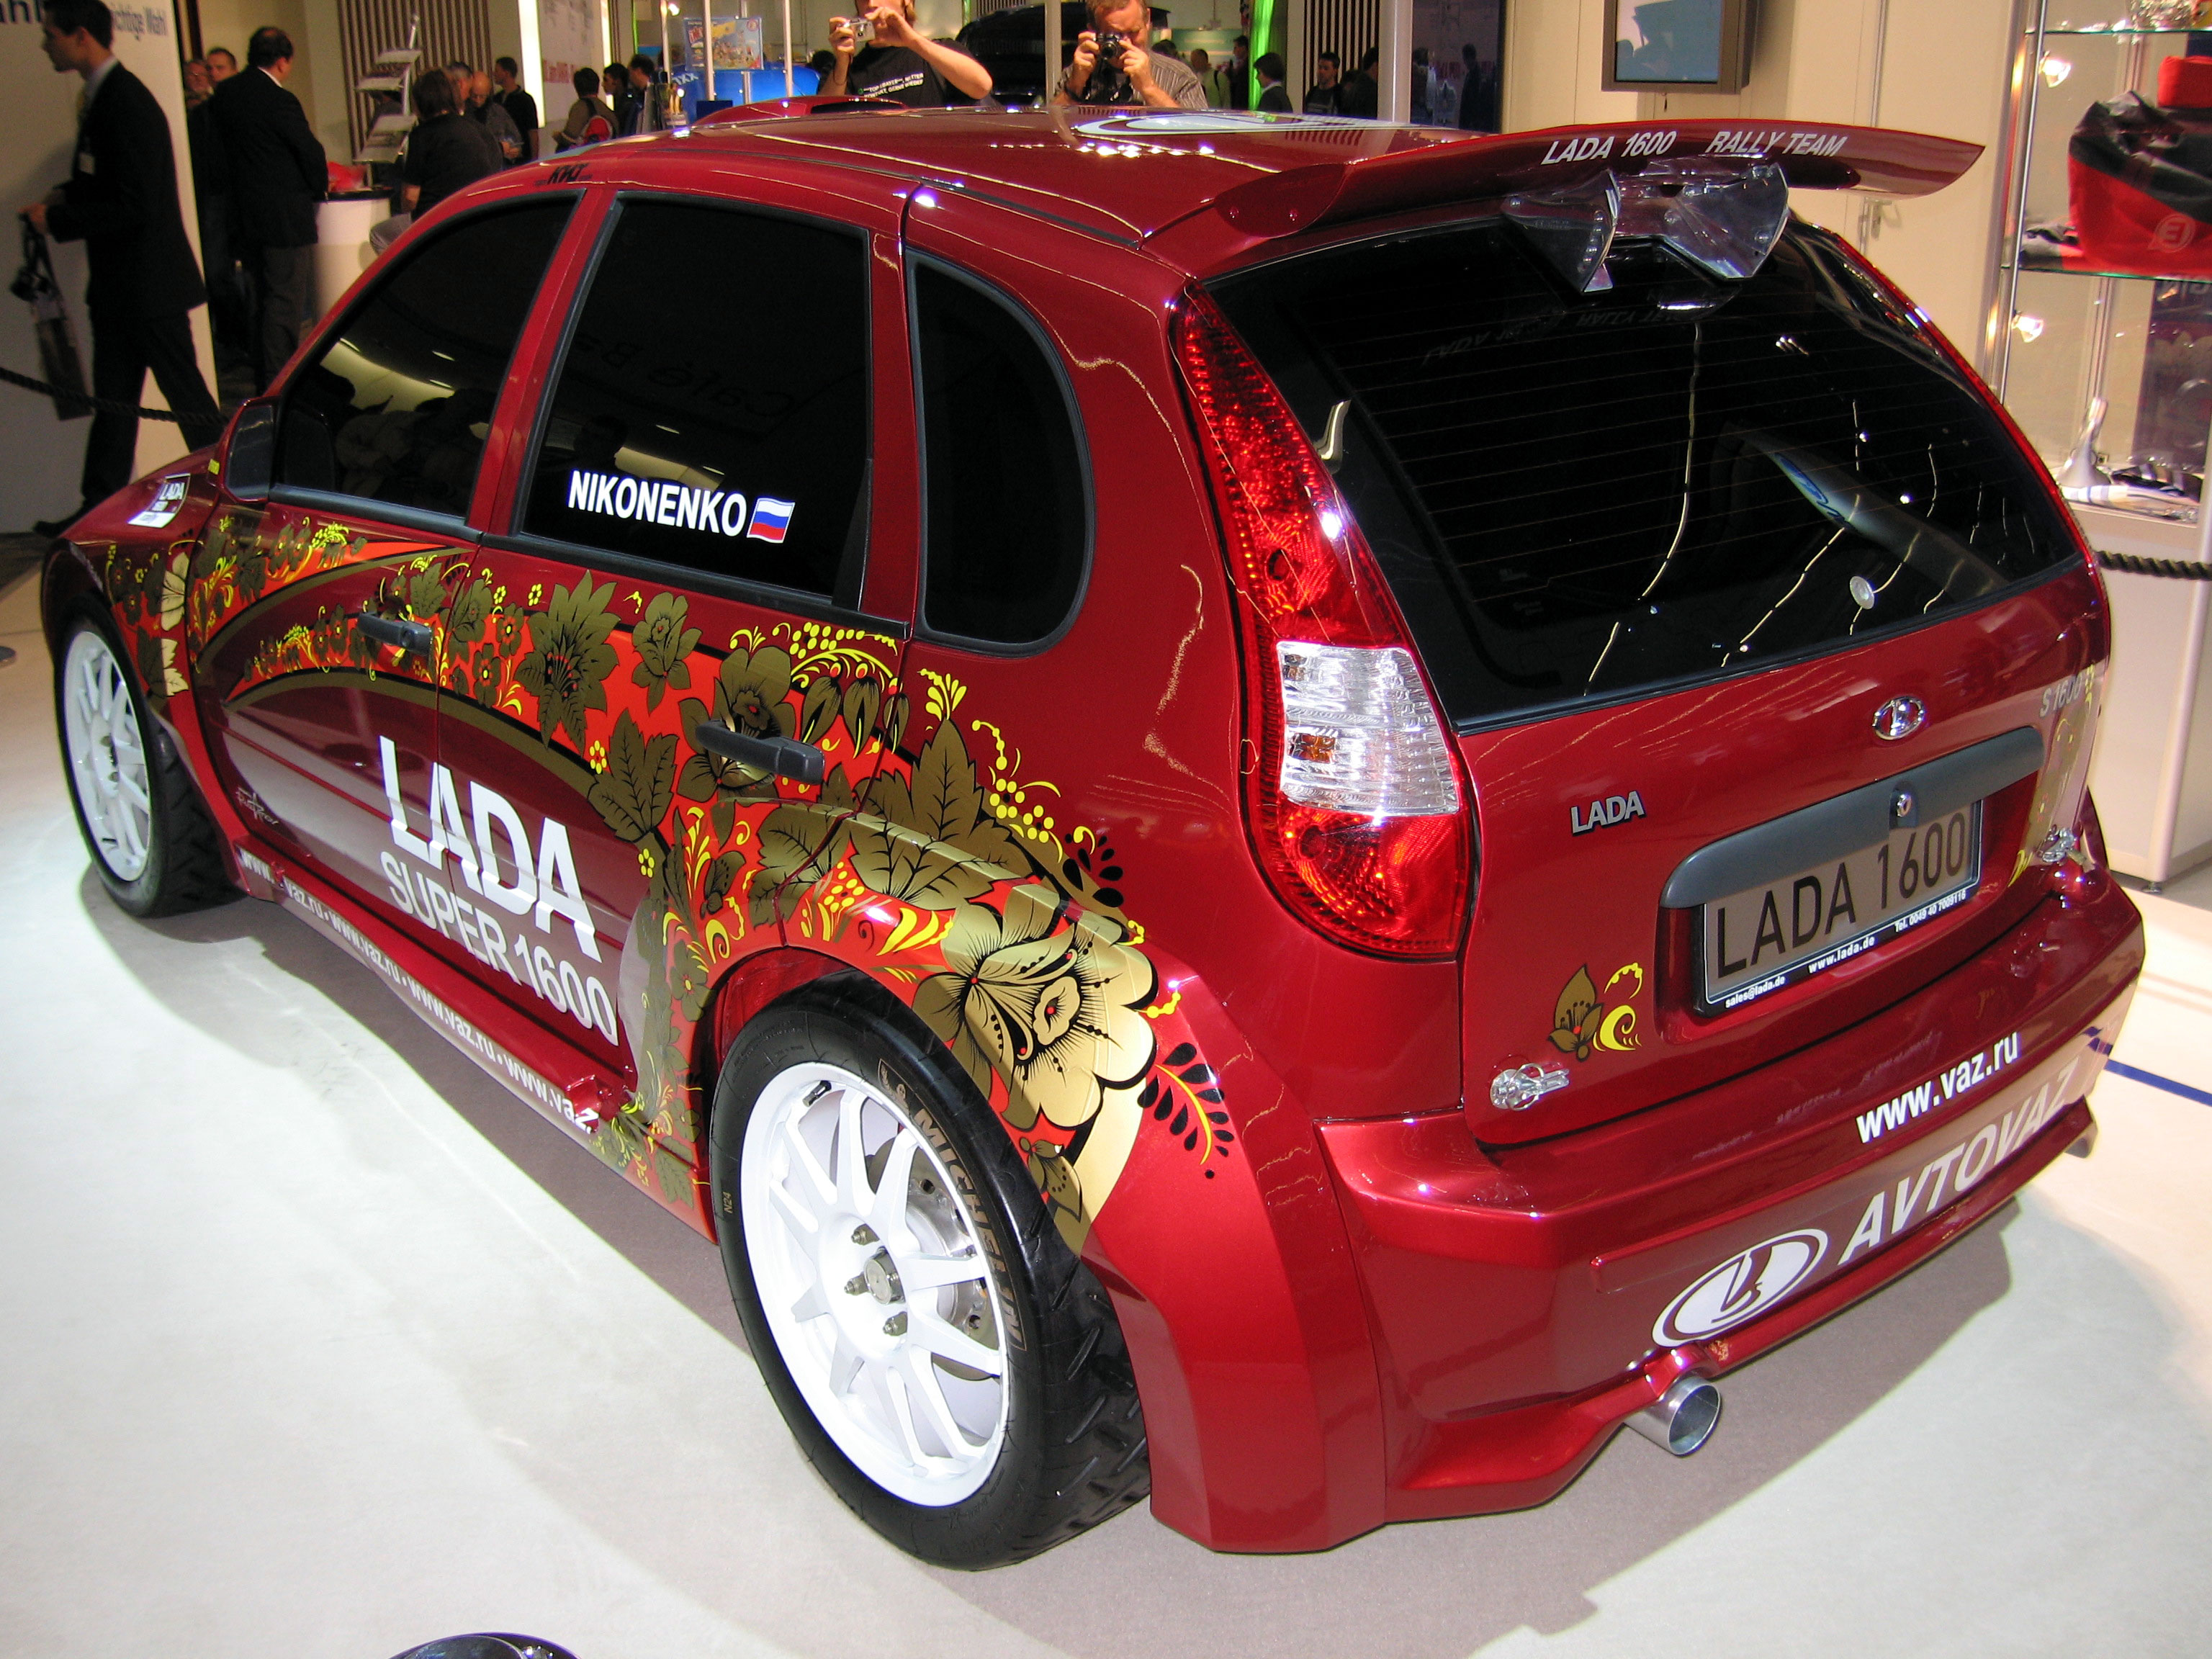 File:Lada Kalina (1119) Super 1600 rear.jpg